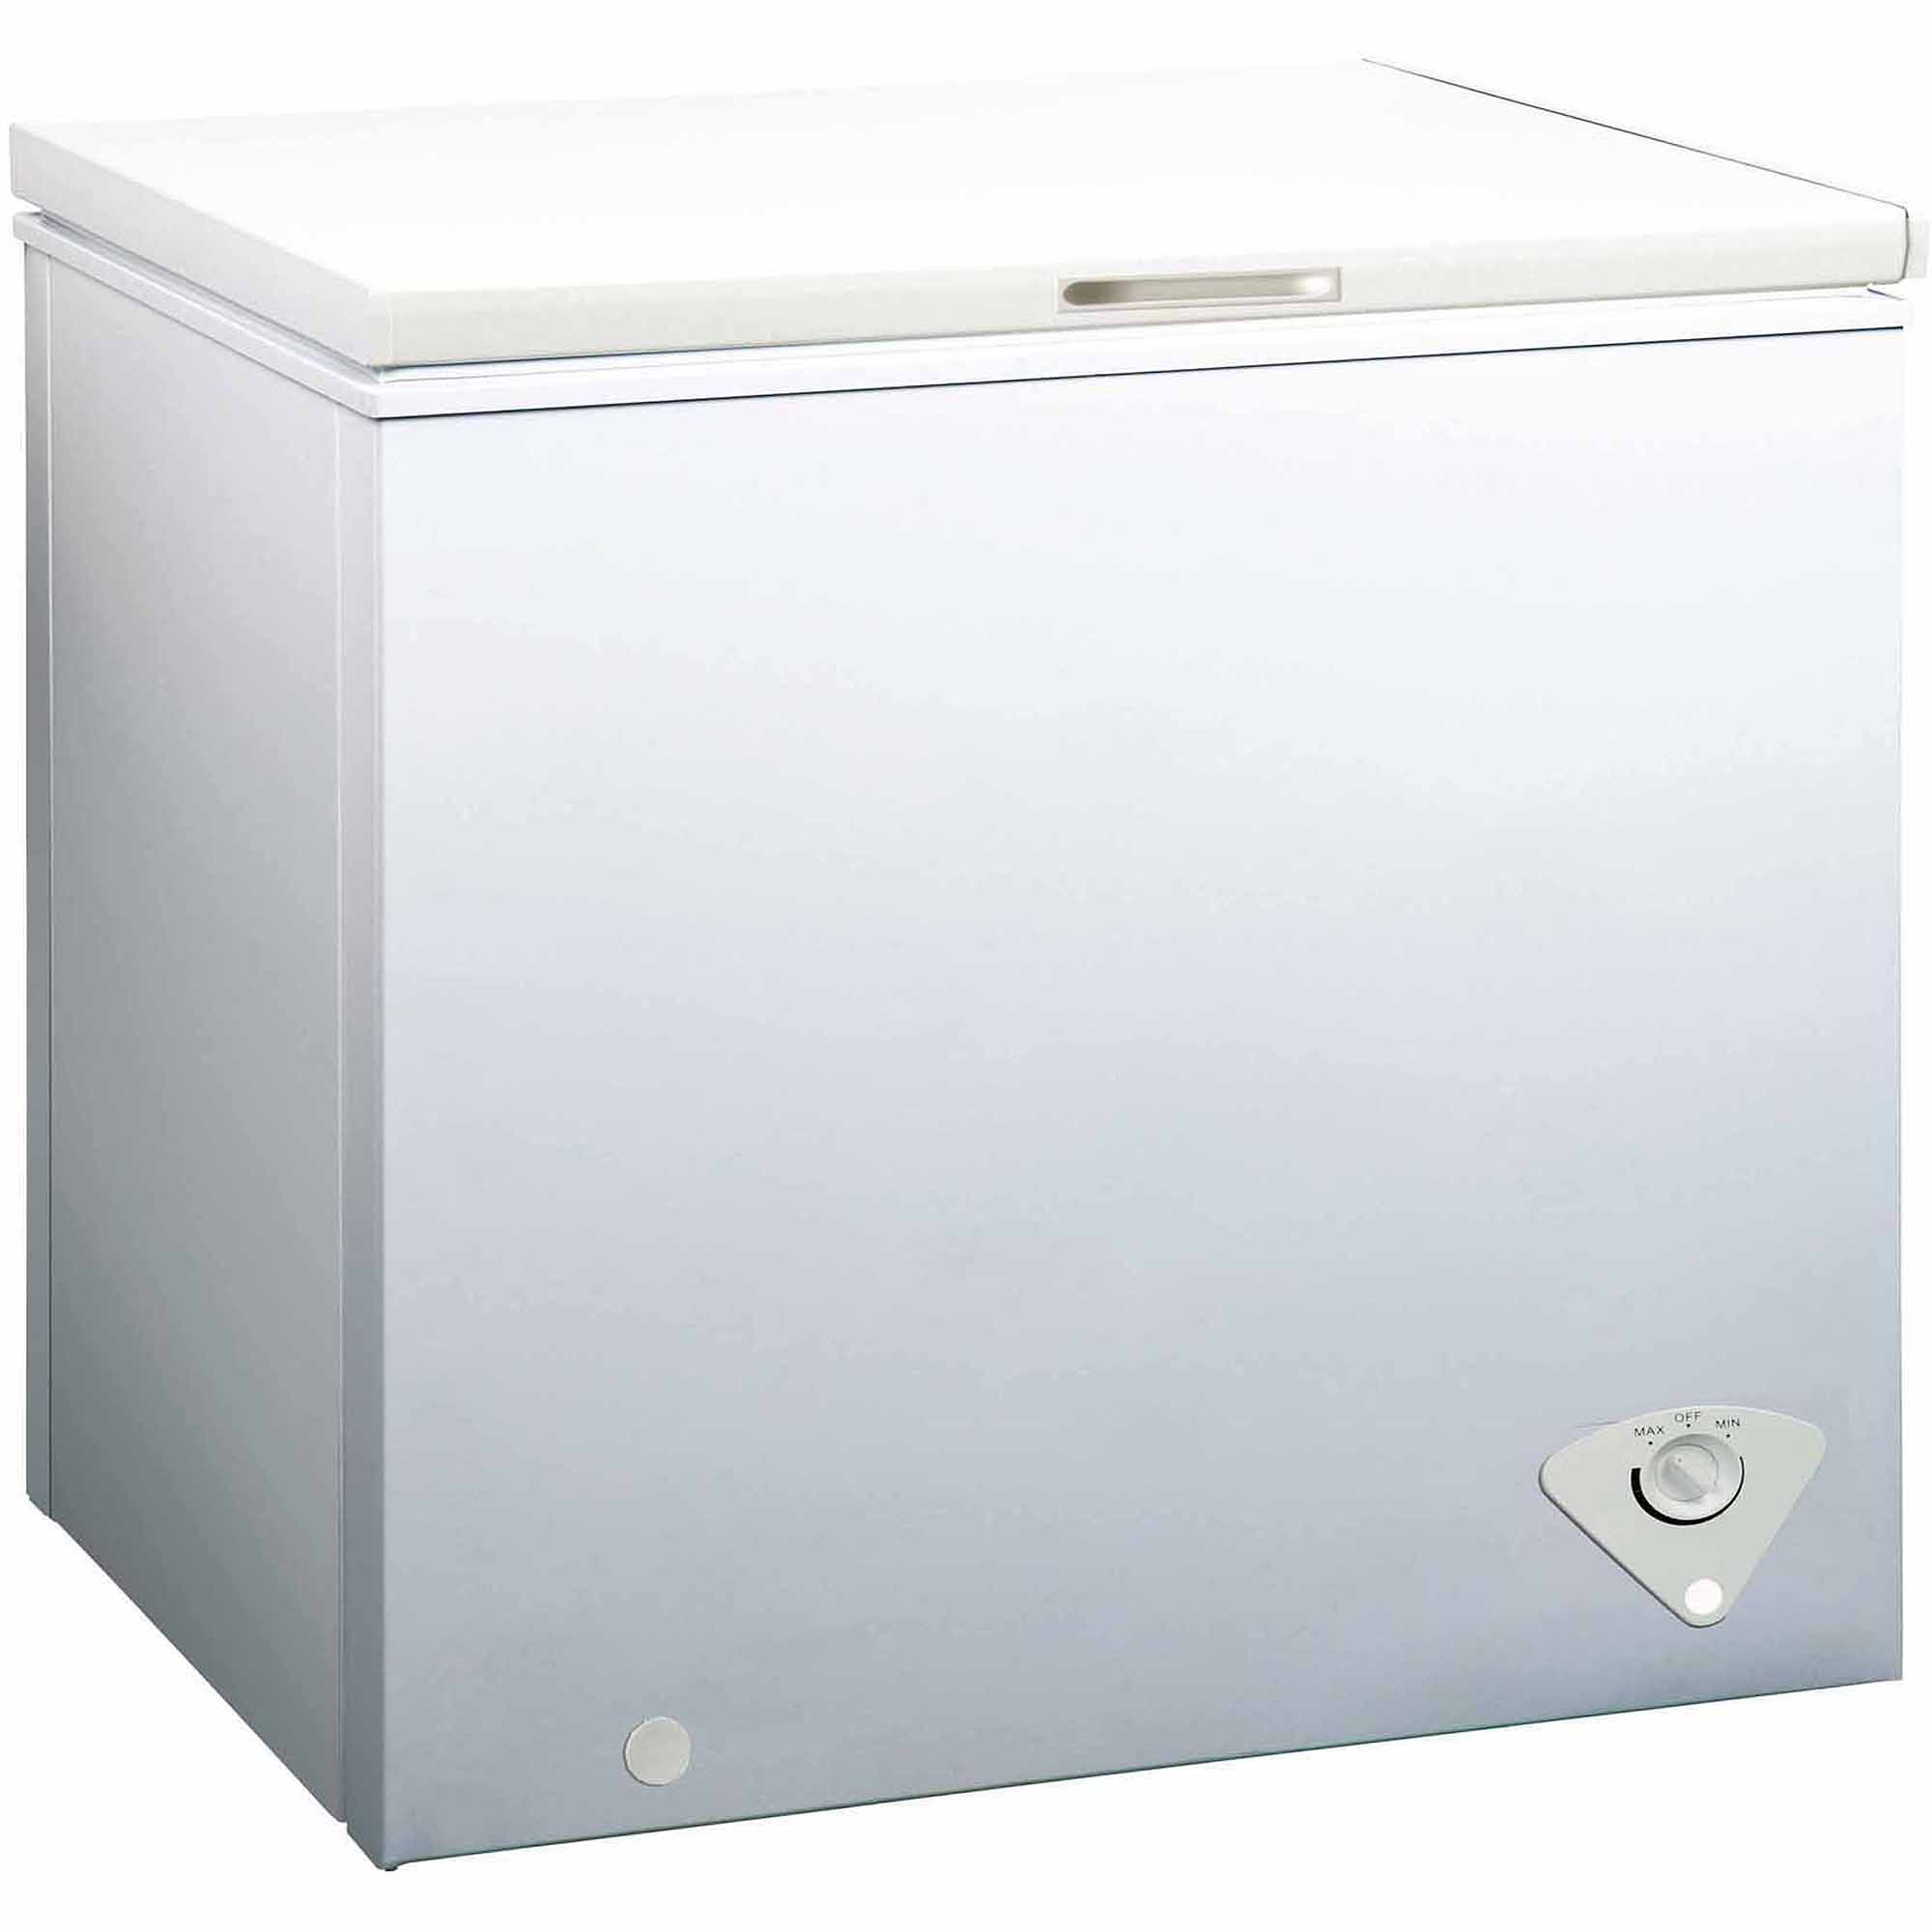 Midea 70 cubic foot Chest Freezer Temp Controlled White